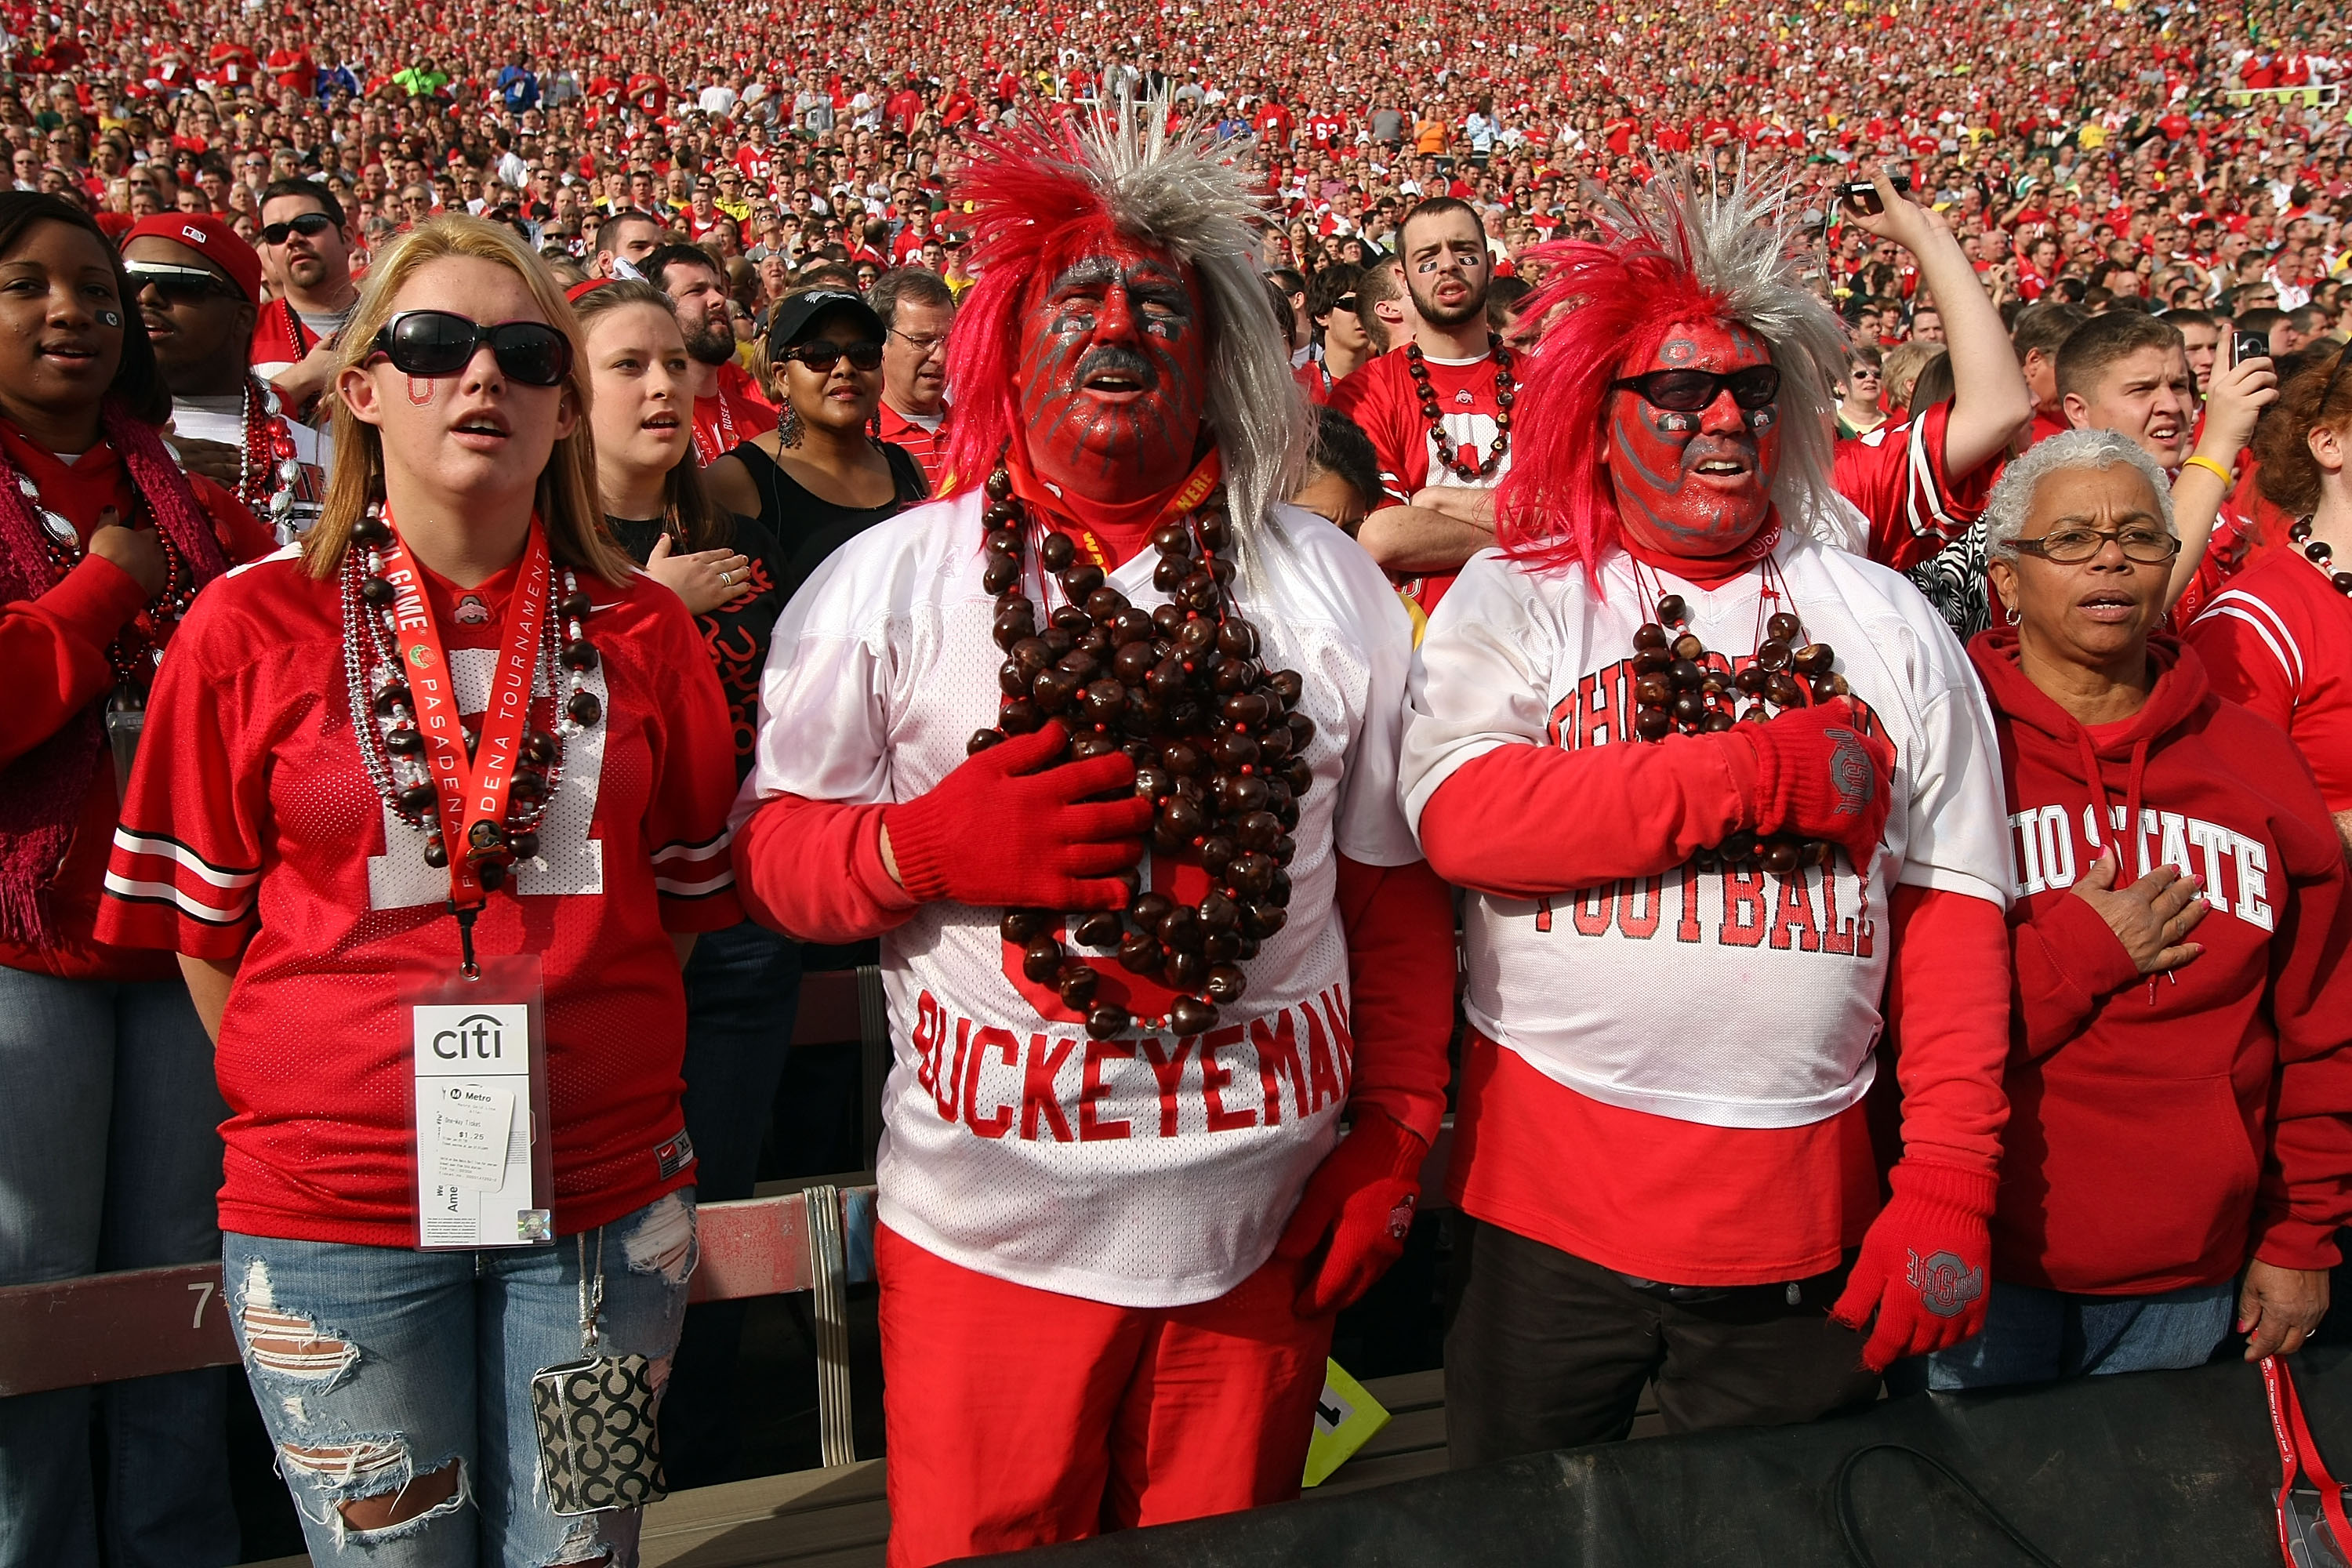 Ohio State fans go all out with their garb on game day.